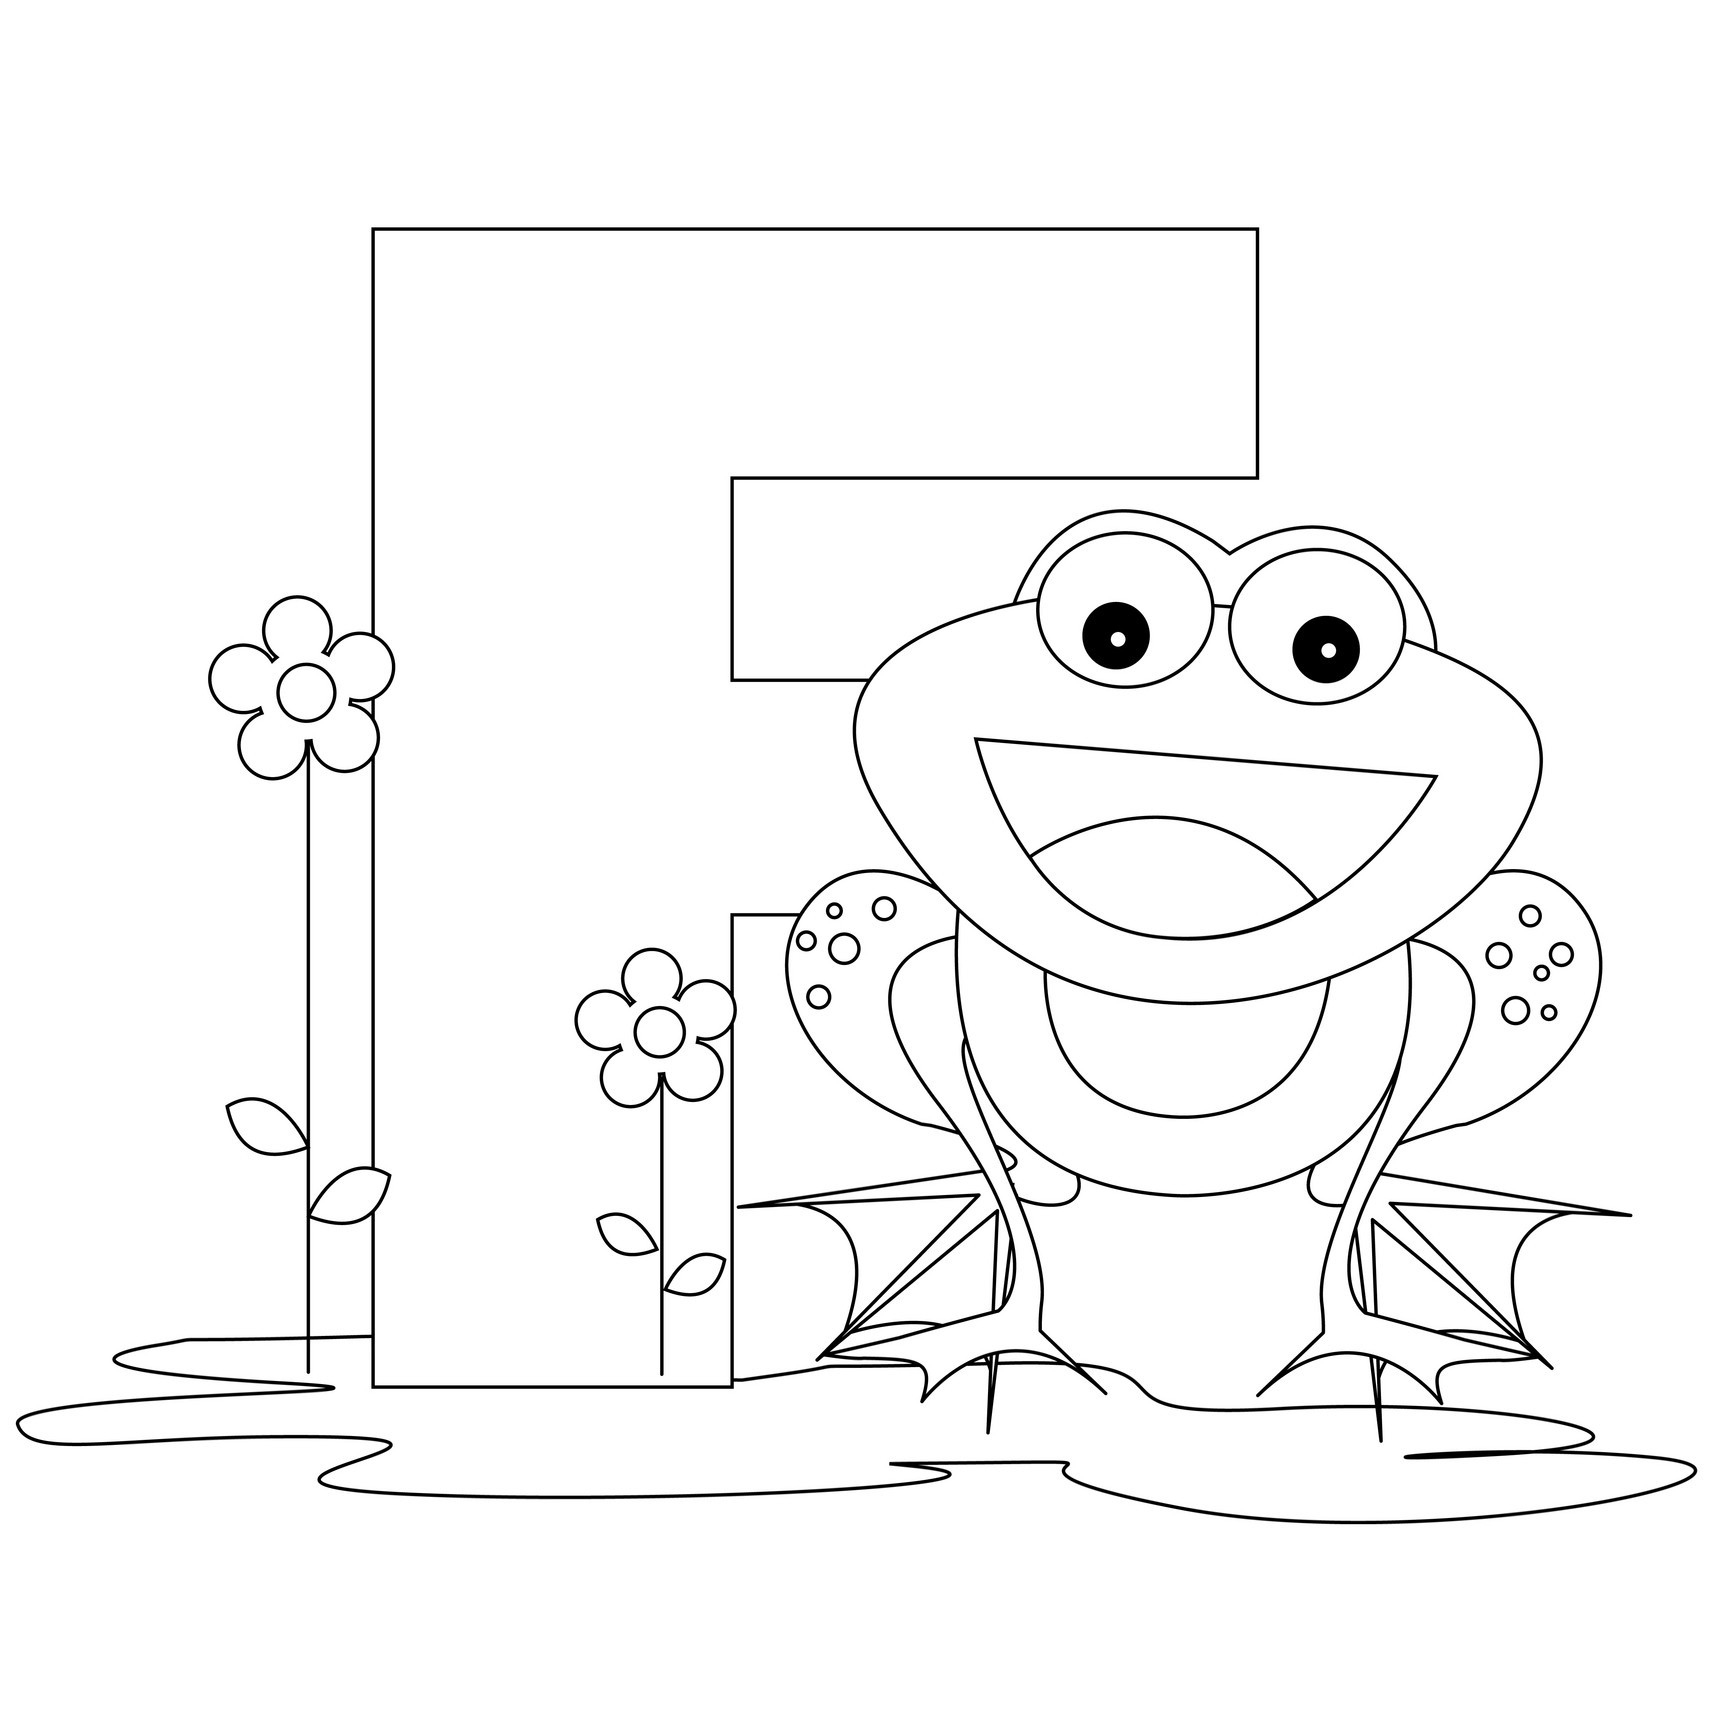 It's just an image of Peaceful Letter Printable Coloring Pages